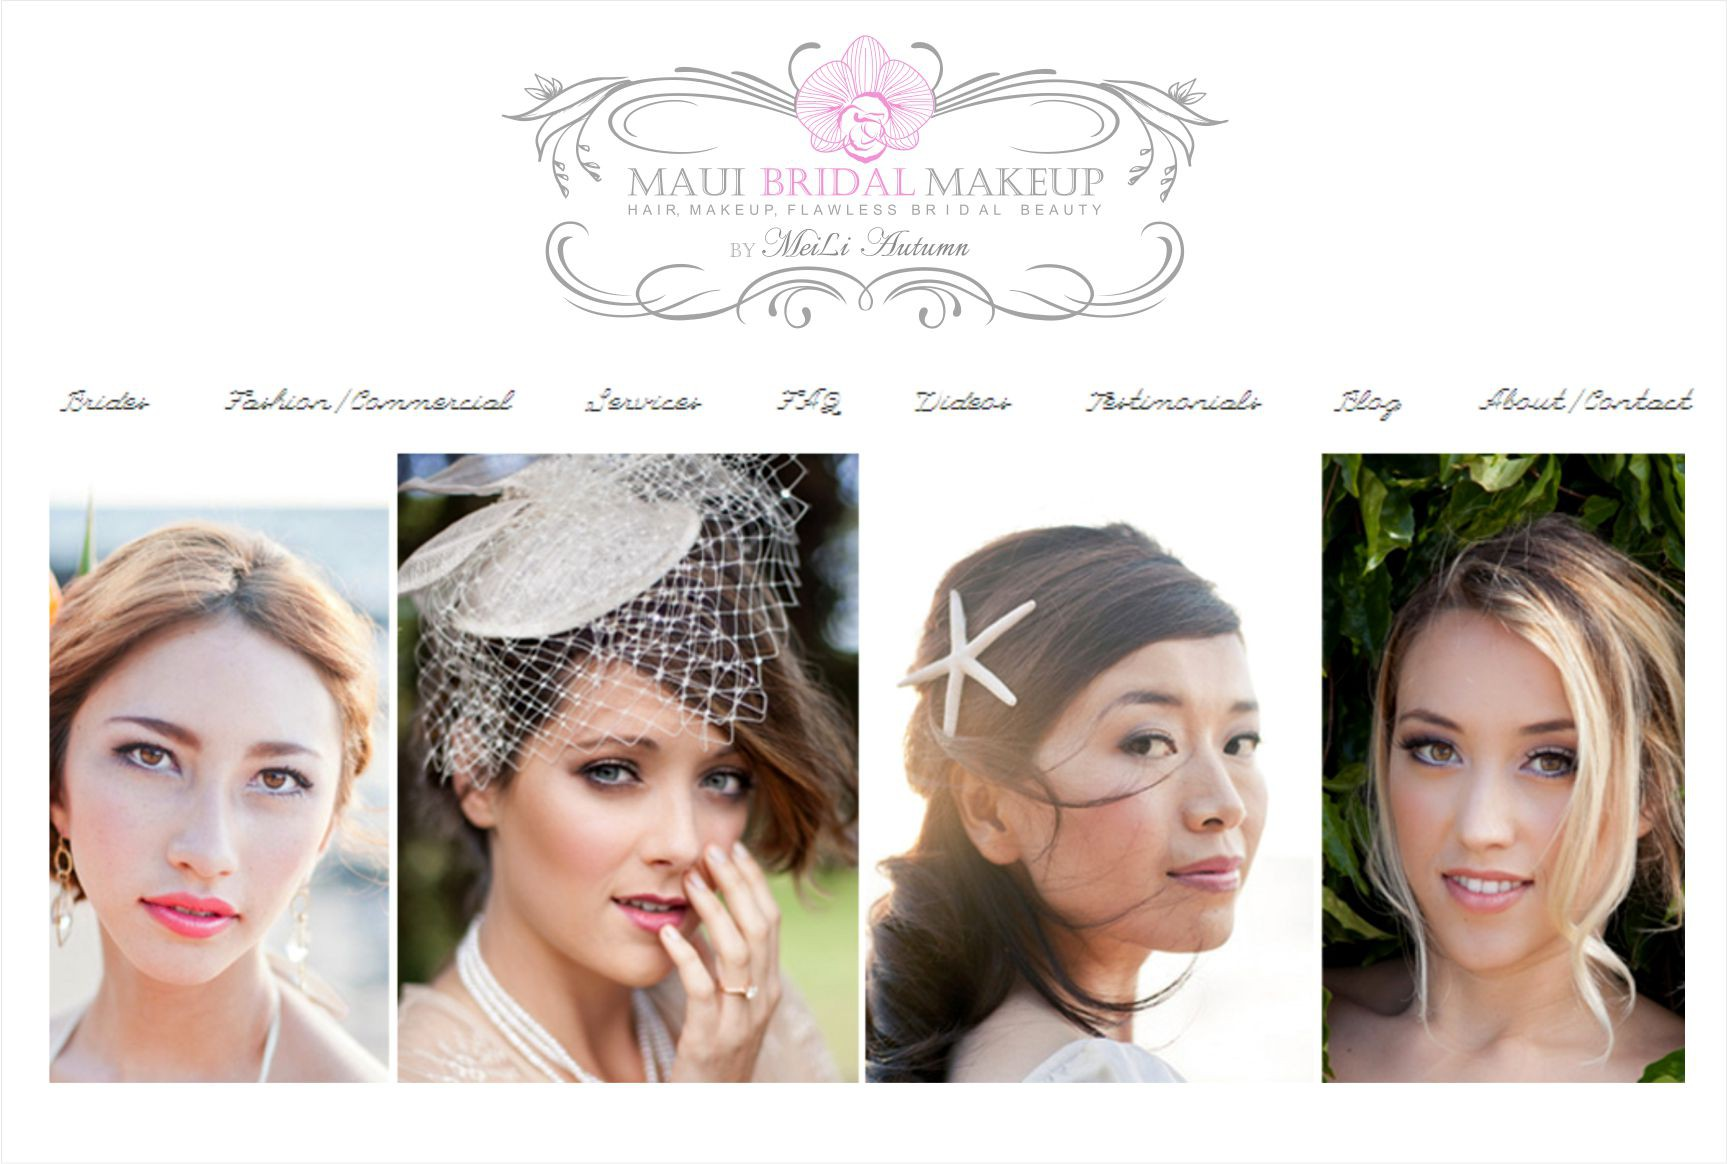 Bridal Makeup Artist needs sweet, eye-catching, modern Logo